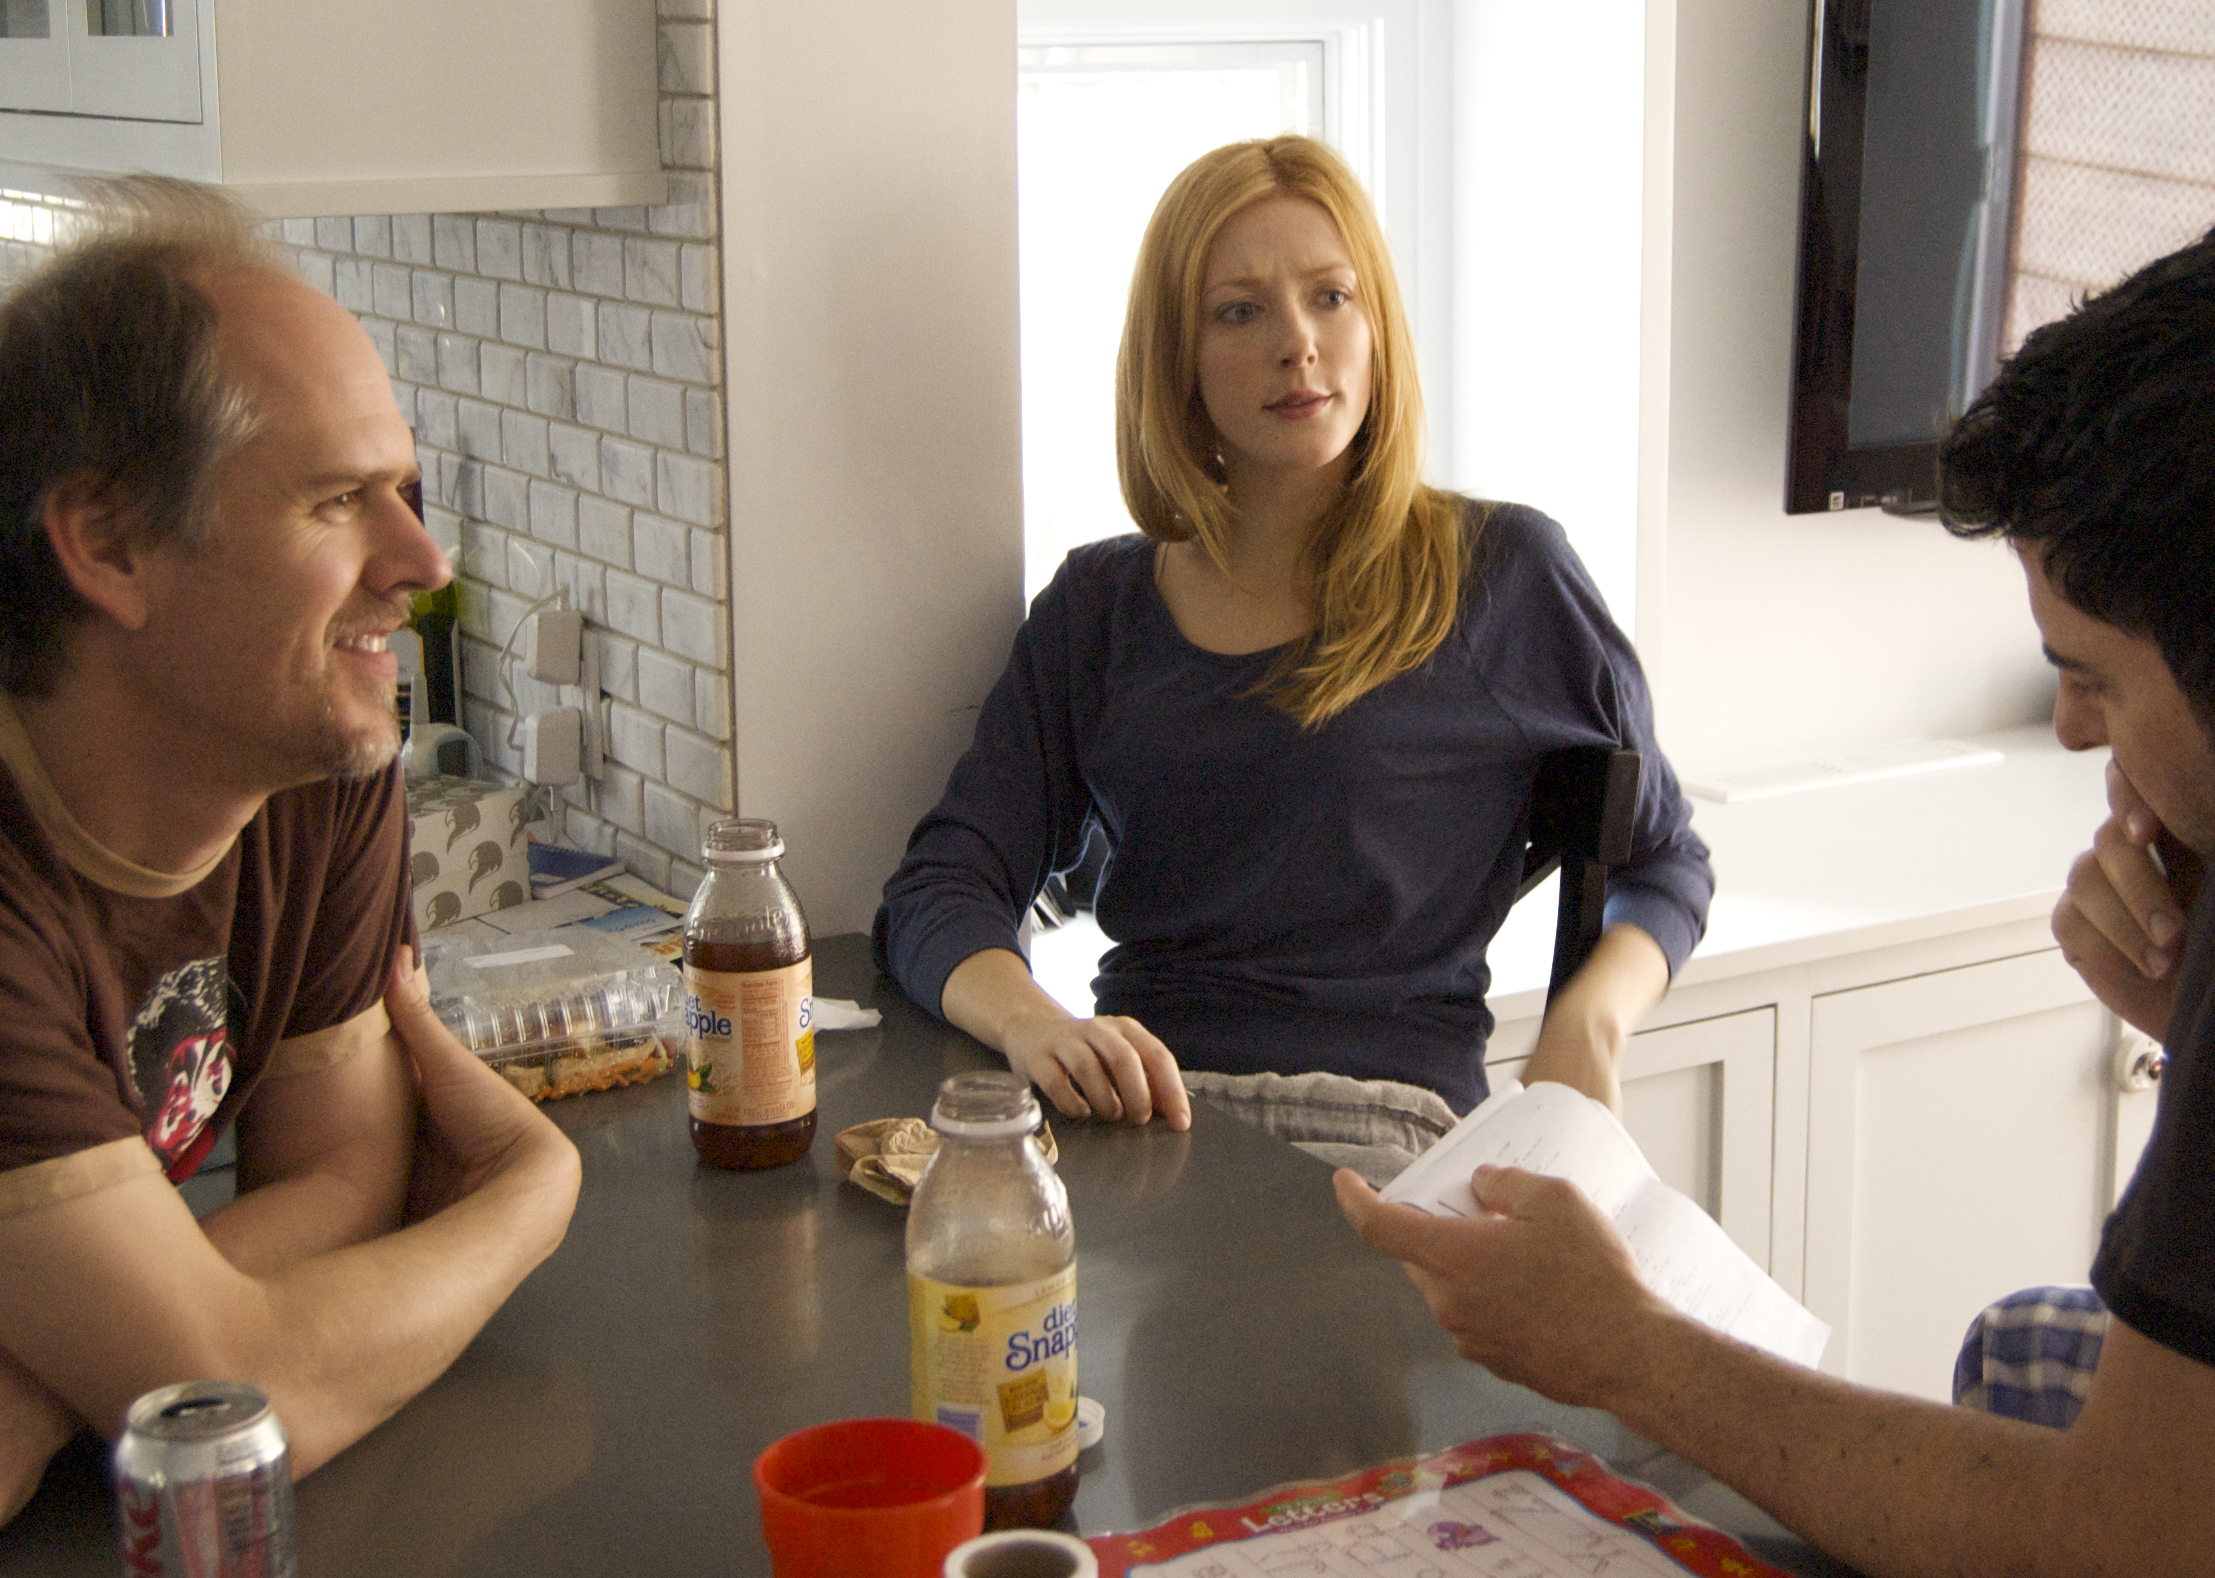 Conception with Jennifer Finnigan and Jonathan Silverman